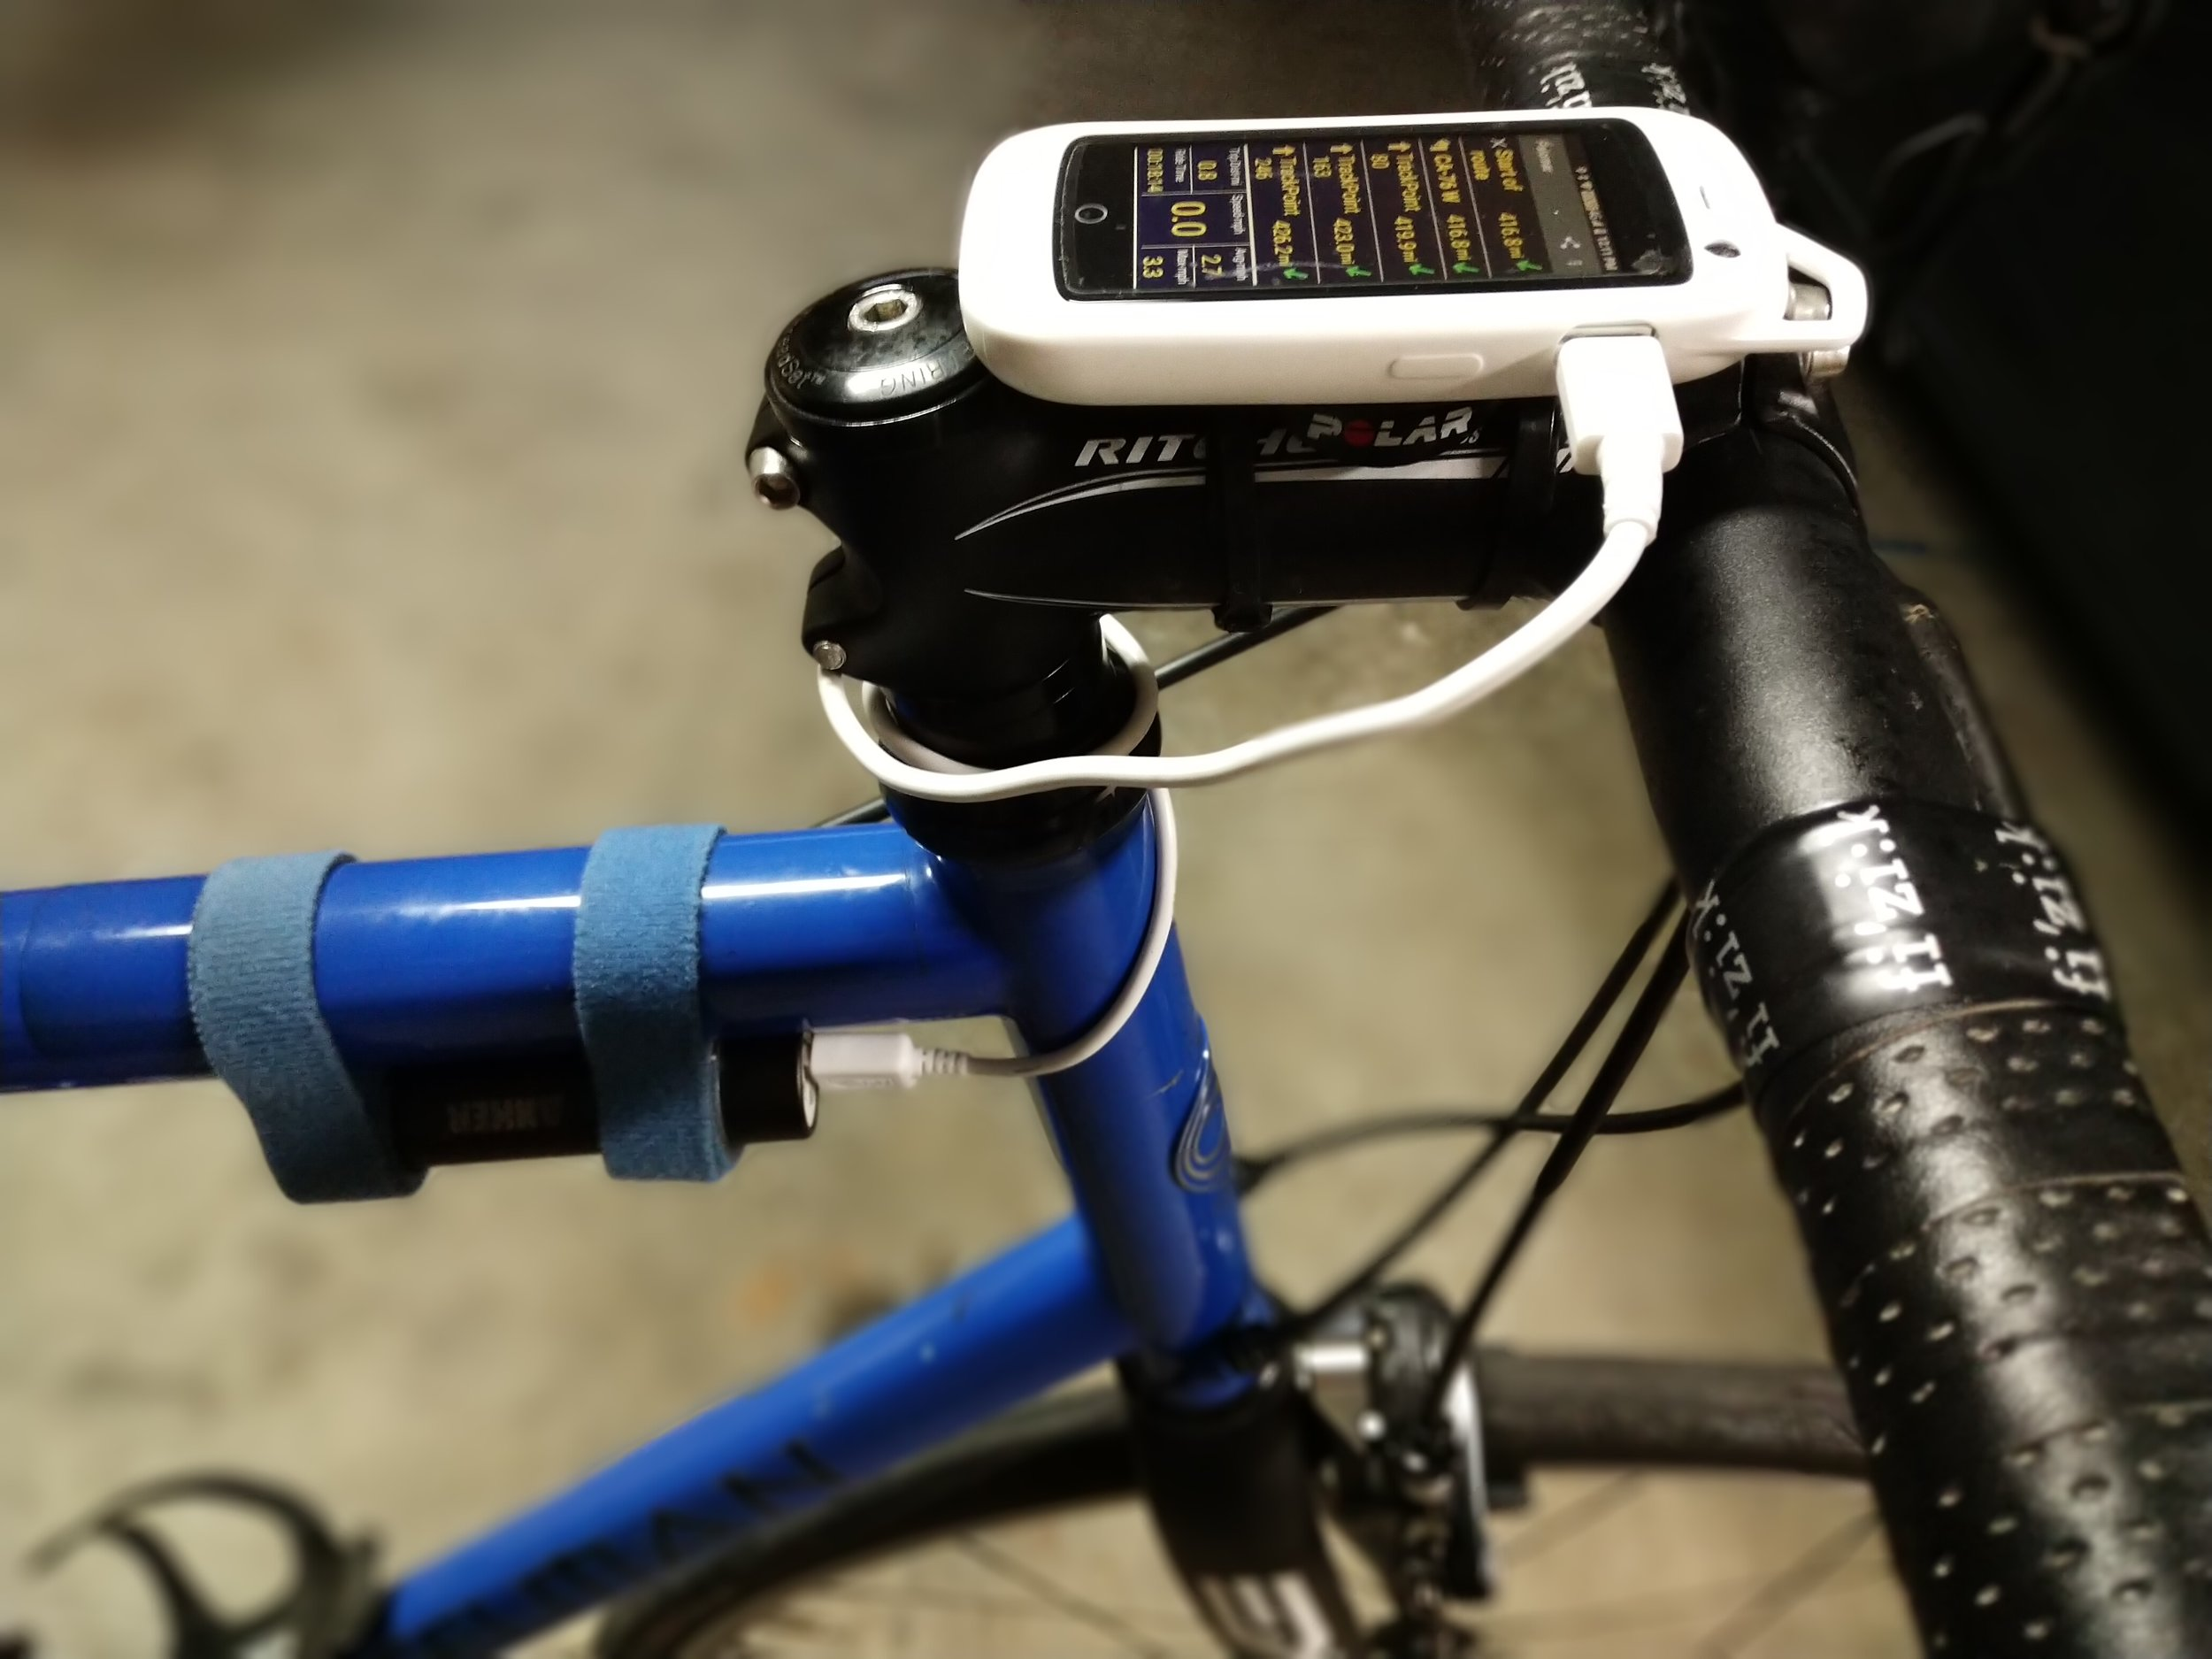 - Here's the Jelly pro mounted on the bike with a Polar quarter-turn mount. Notice also the Anker external battery mounted under the top tube with velcro.